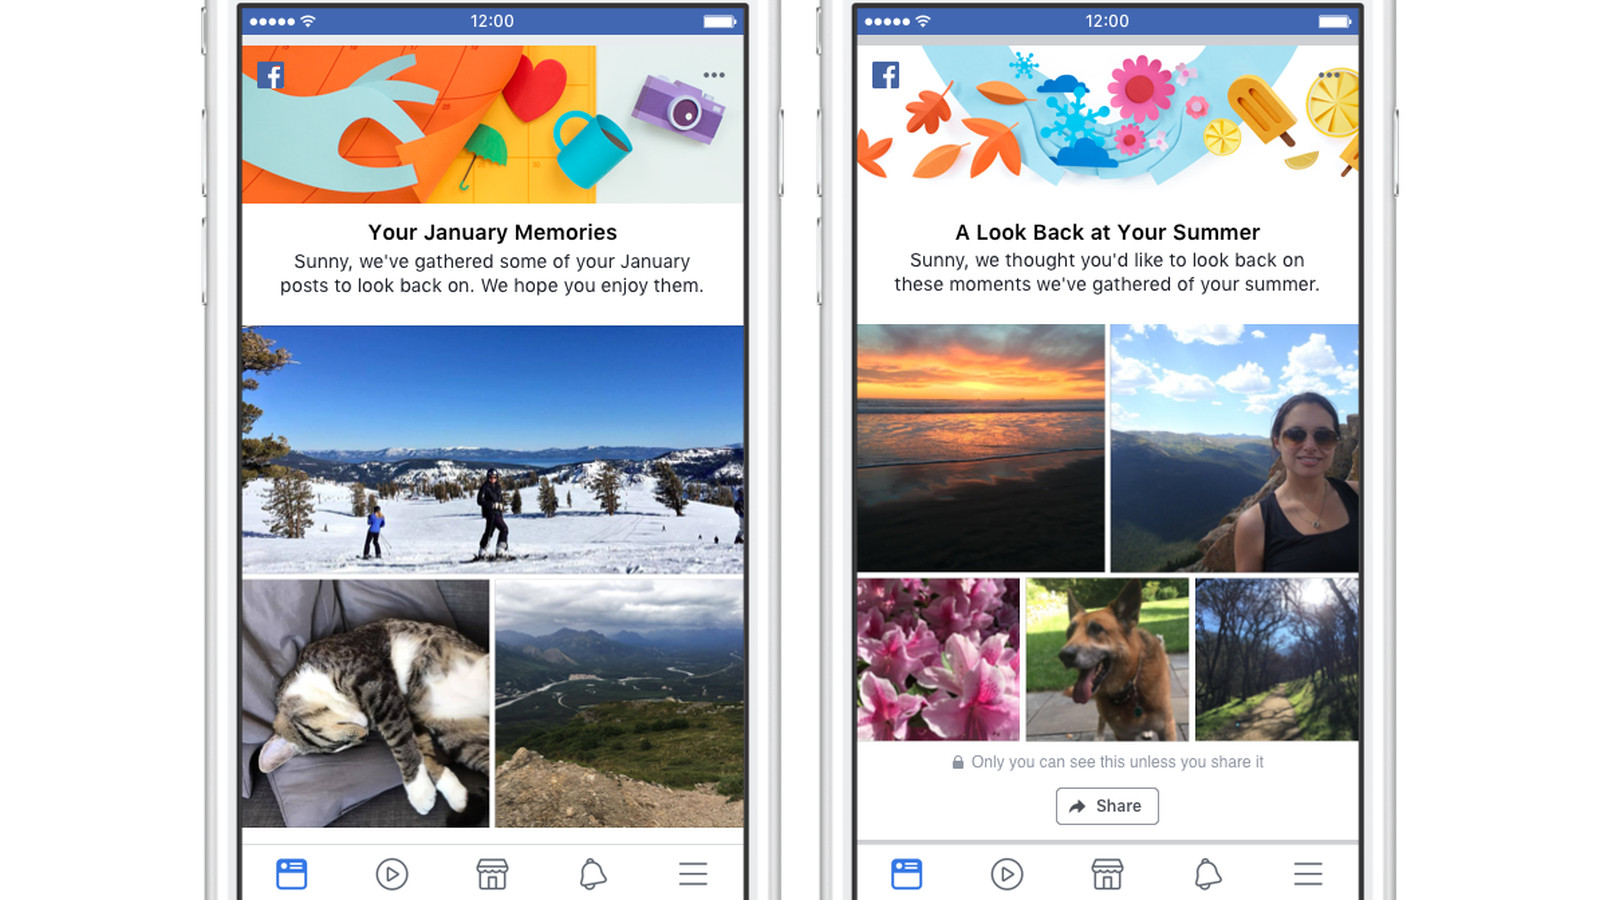 Facebook adds monthly and seasonal recaps to On This Day